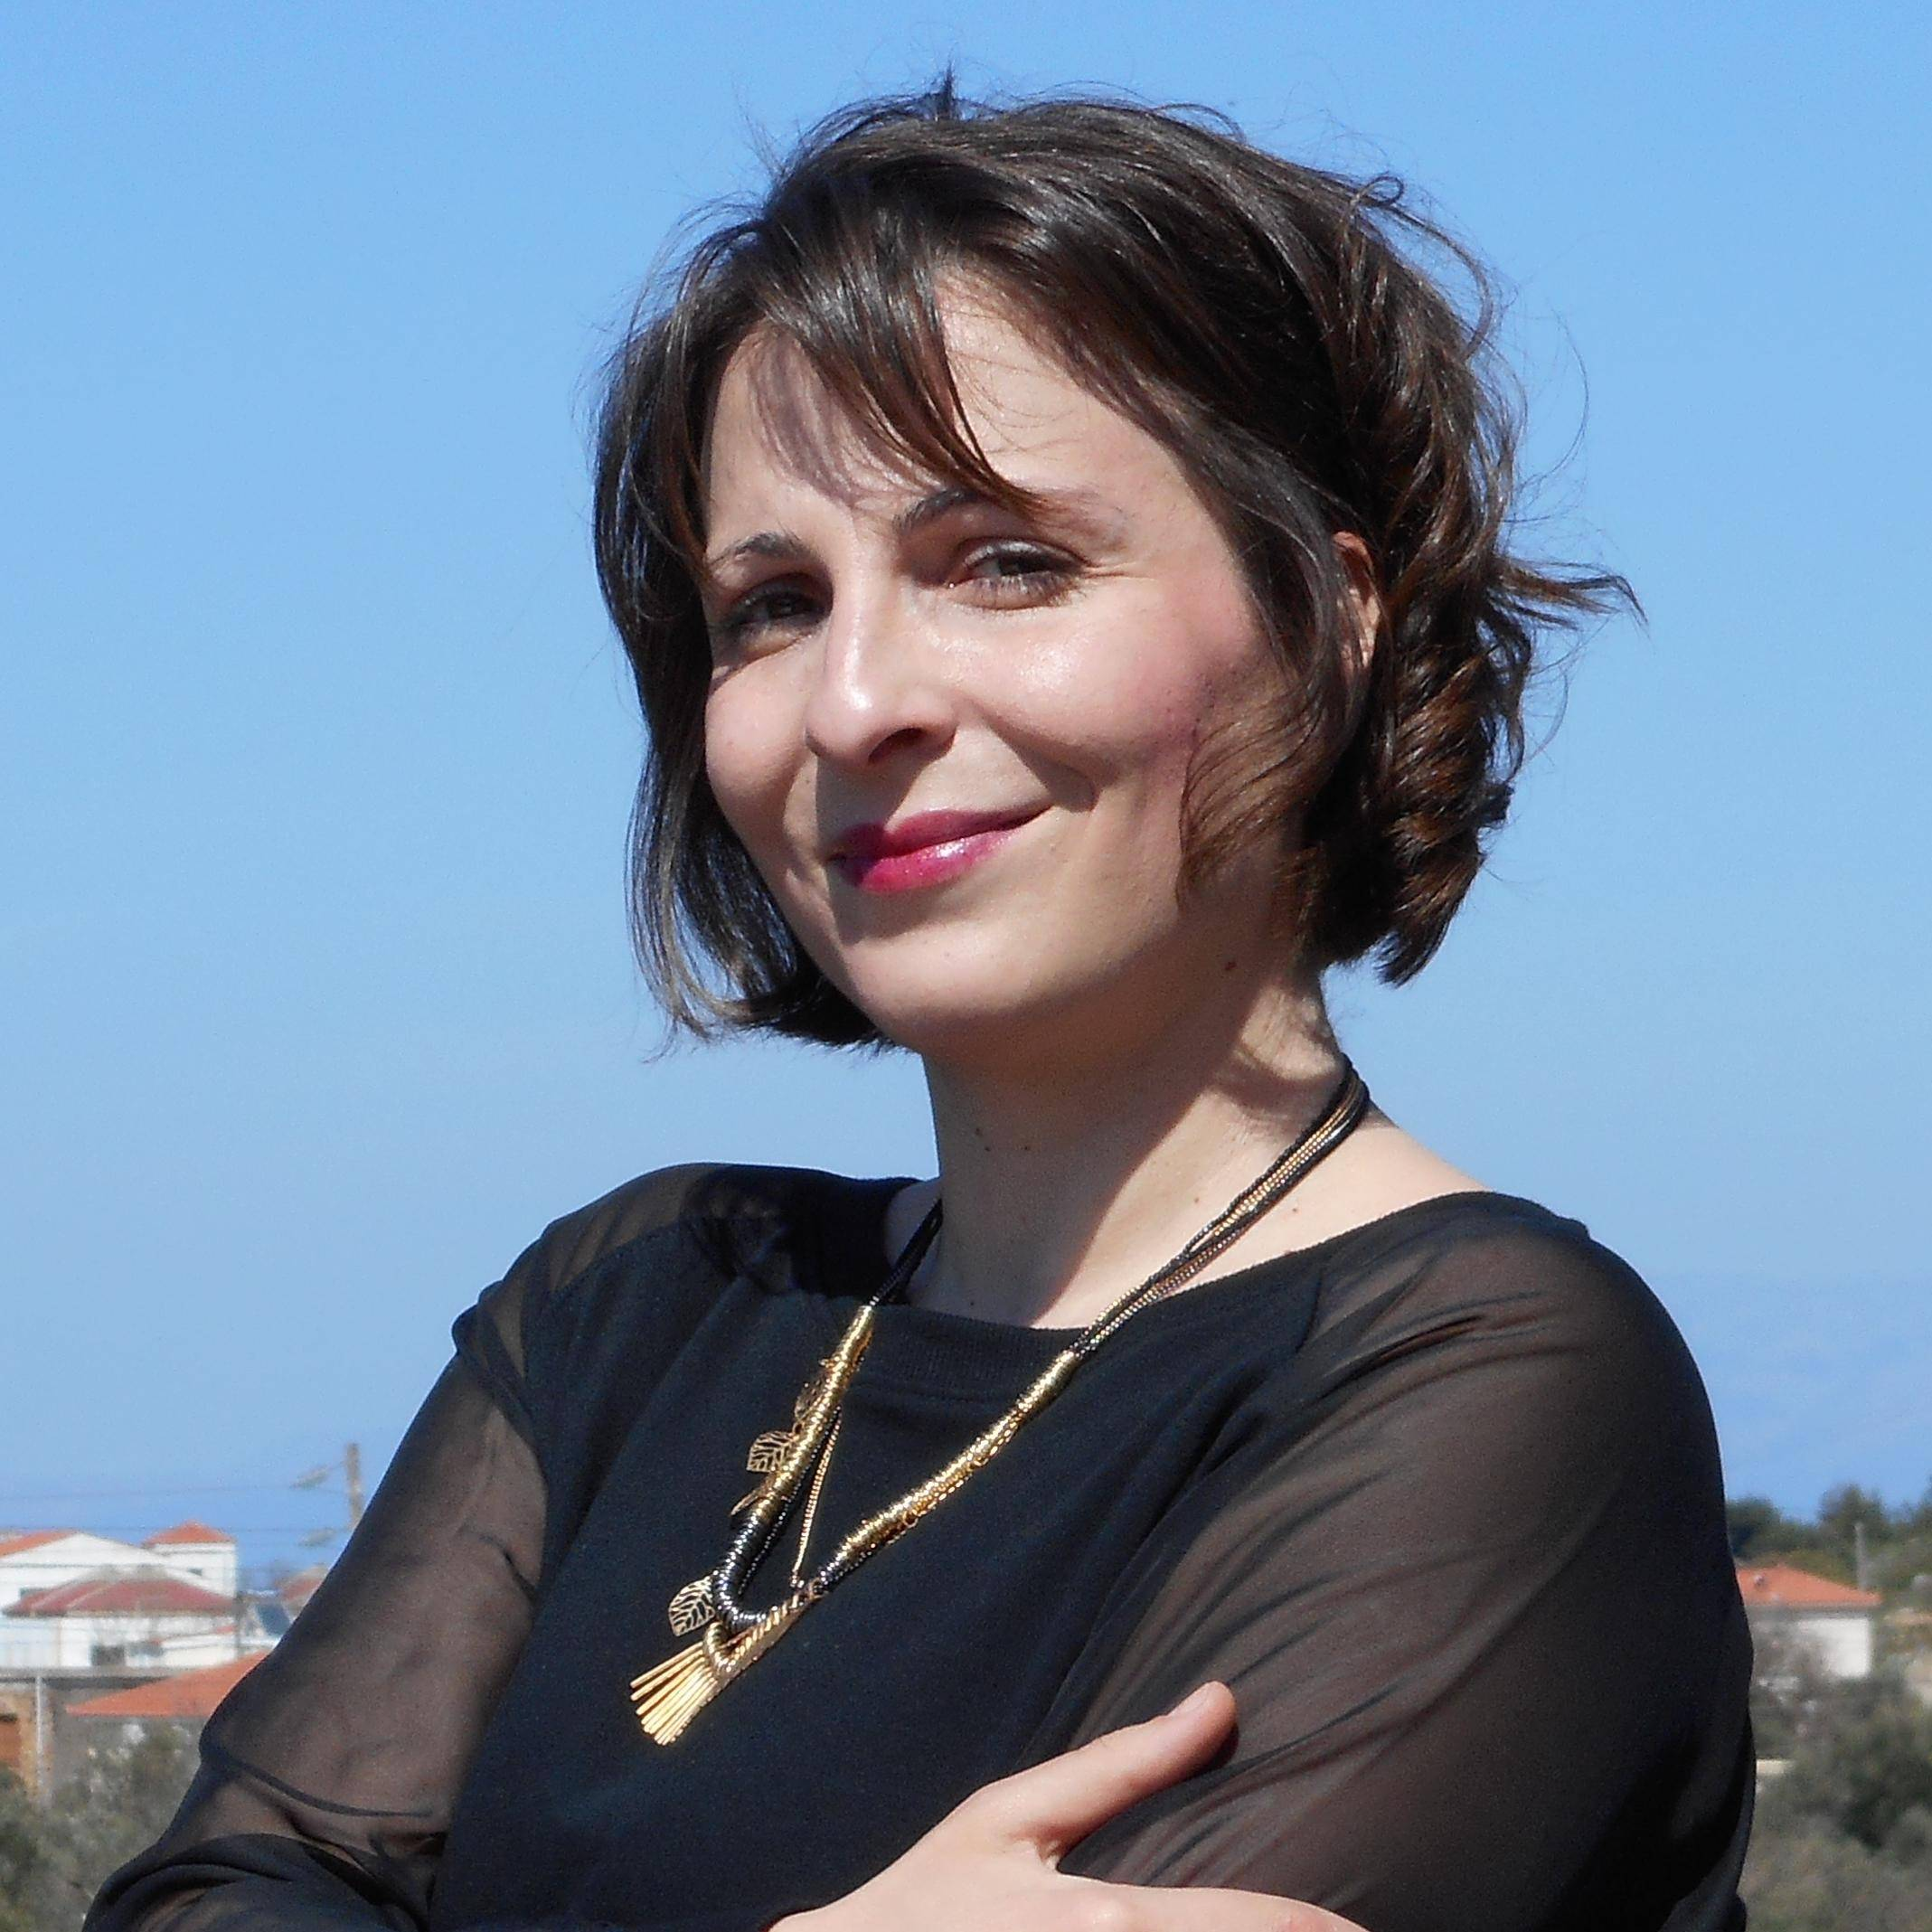 Kyriaki Glyptou profile photo